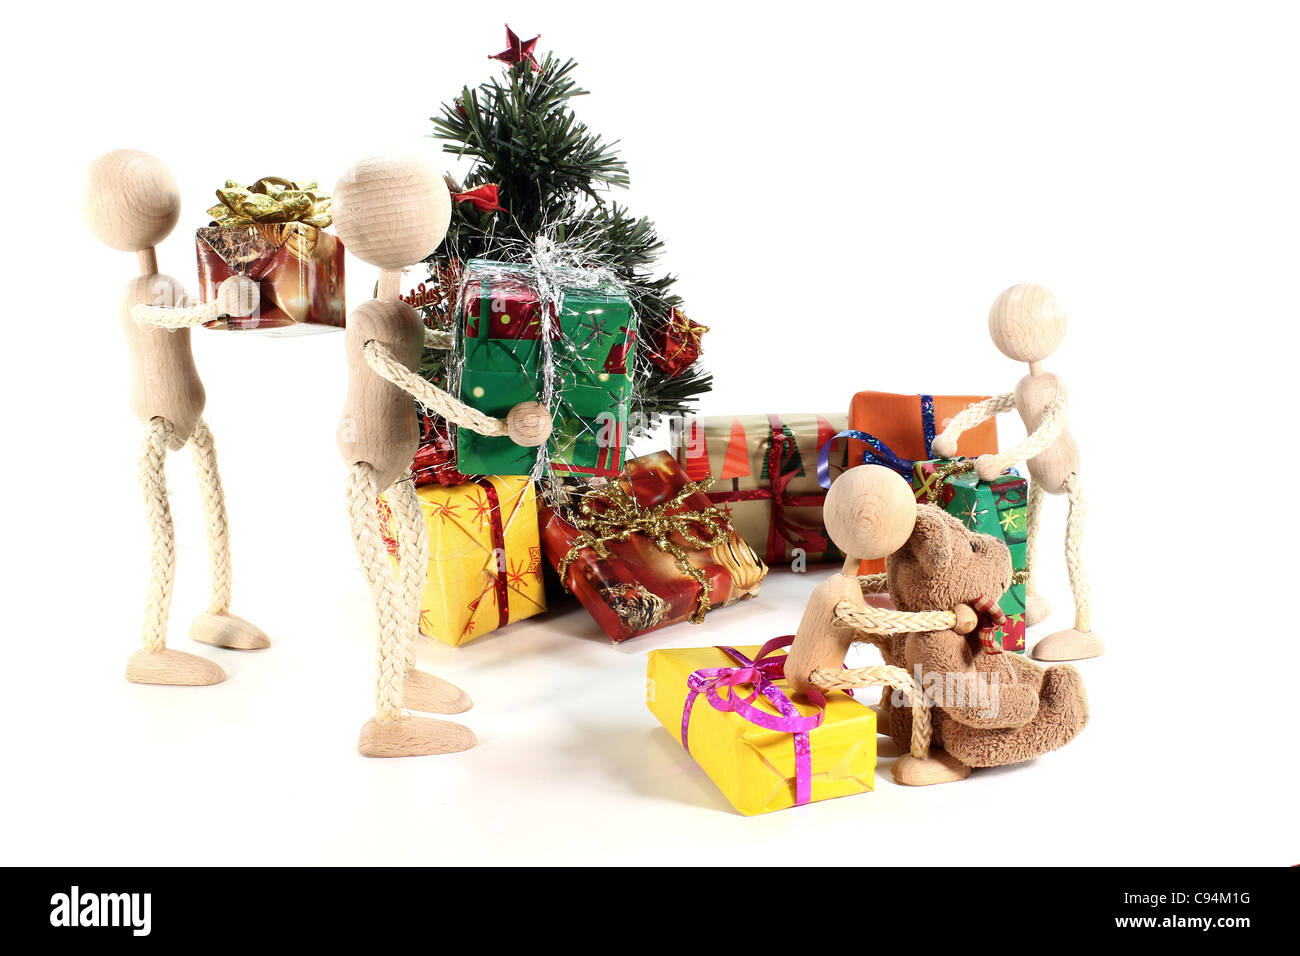 Figures at the handing out of presents and Christmas tree with many gifts - Stock Image